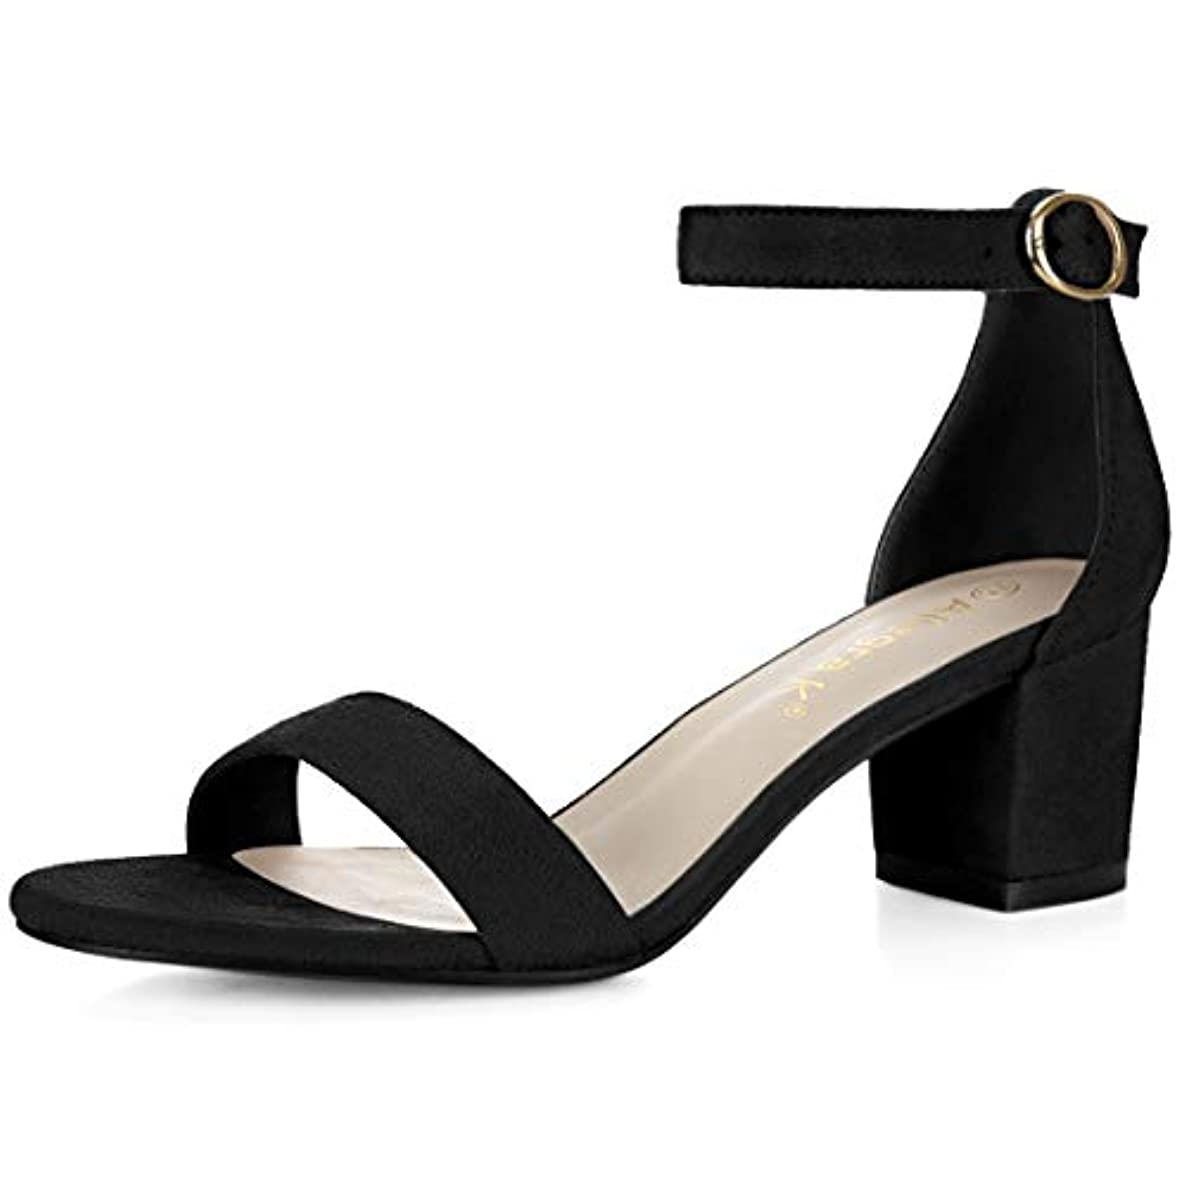 Allegra K Women's Open Toe Block Heel Ankle Strap Sandals